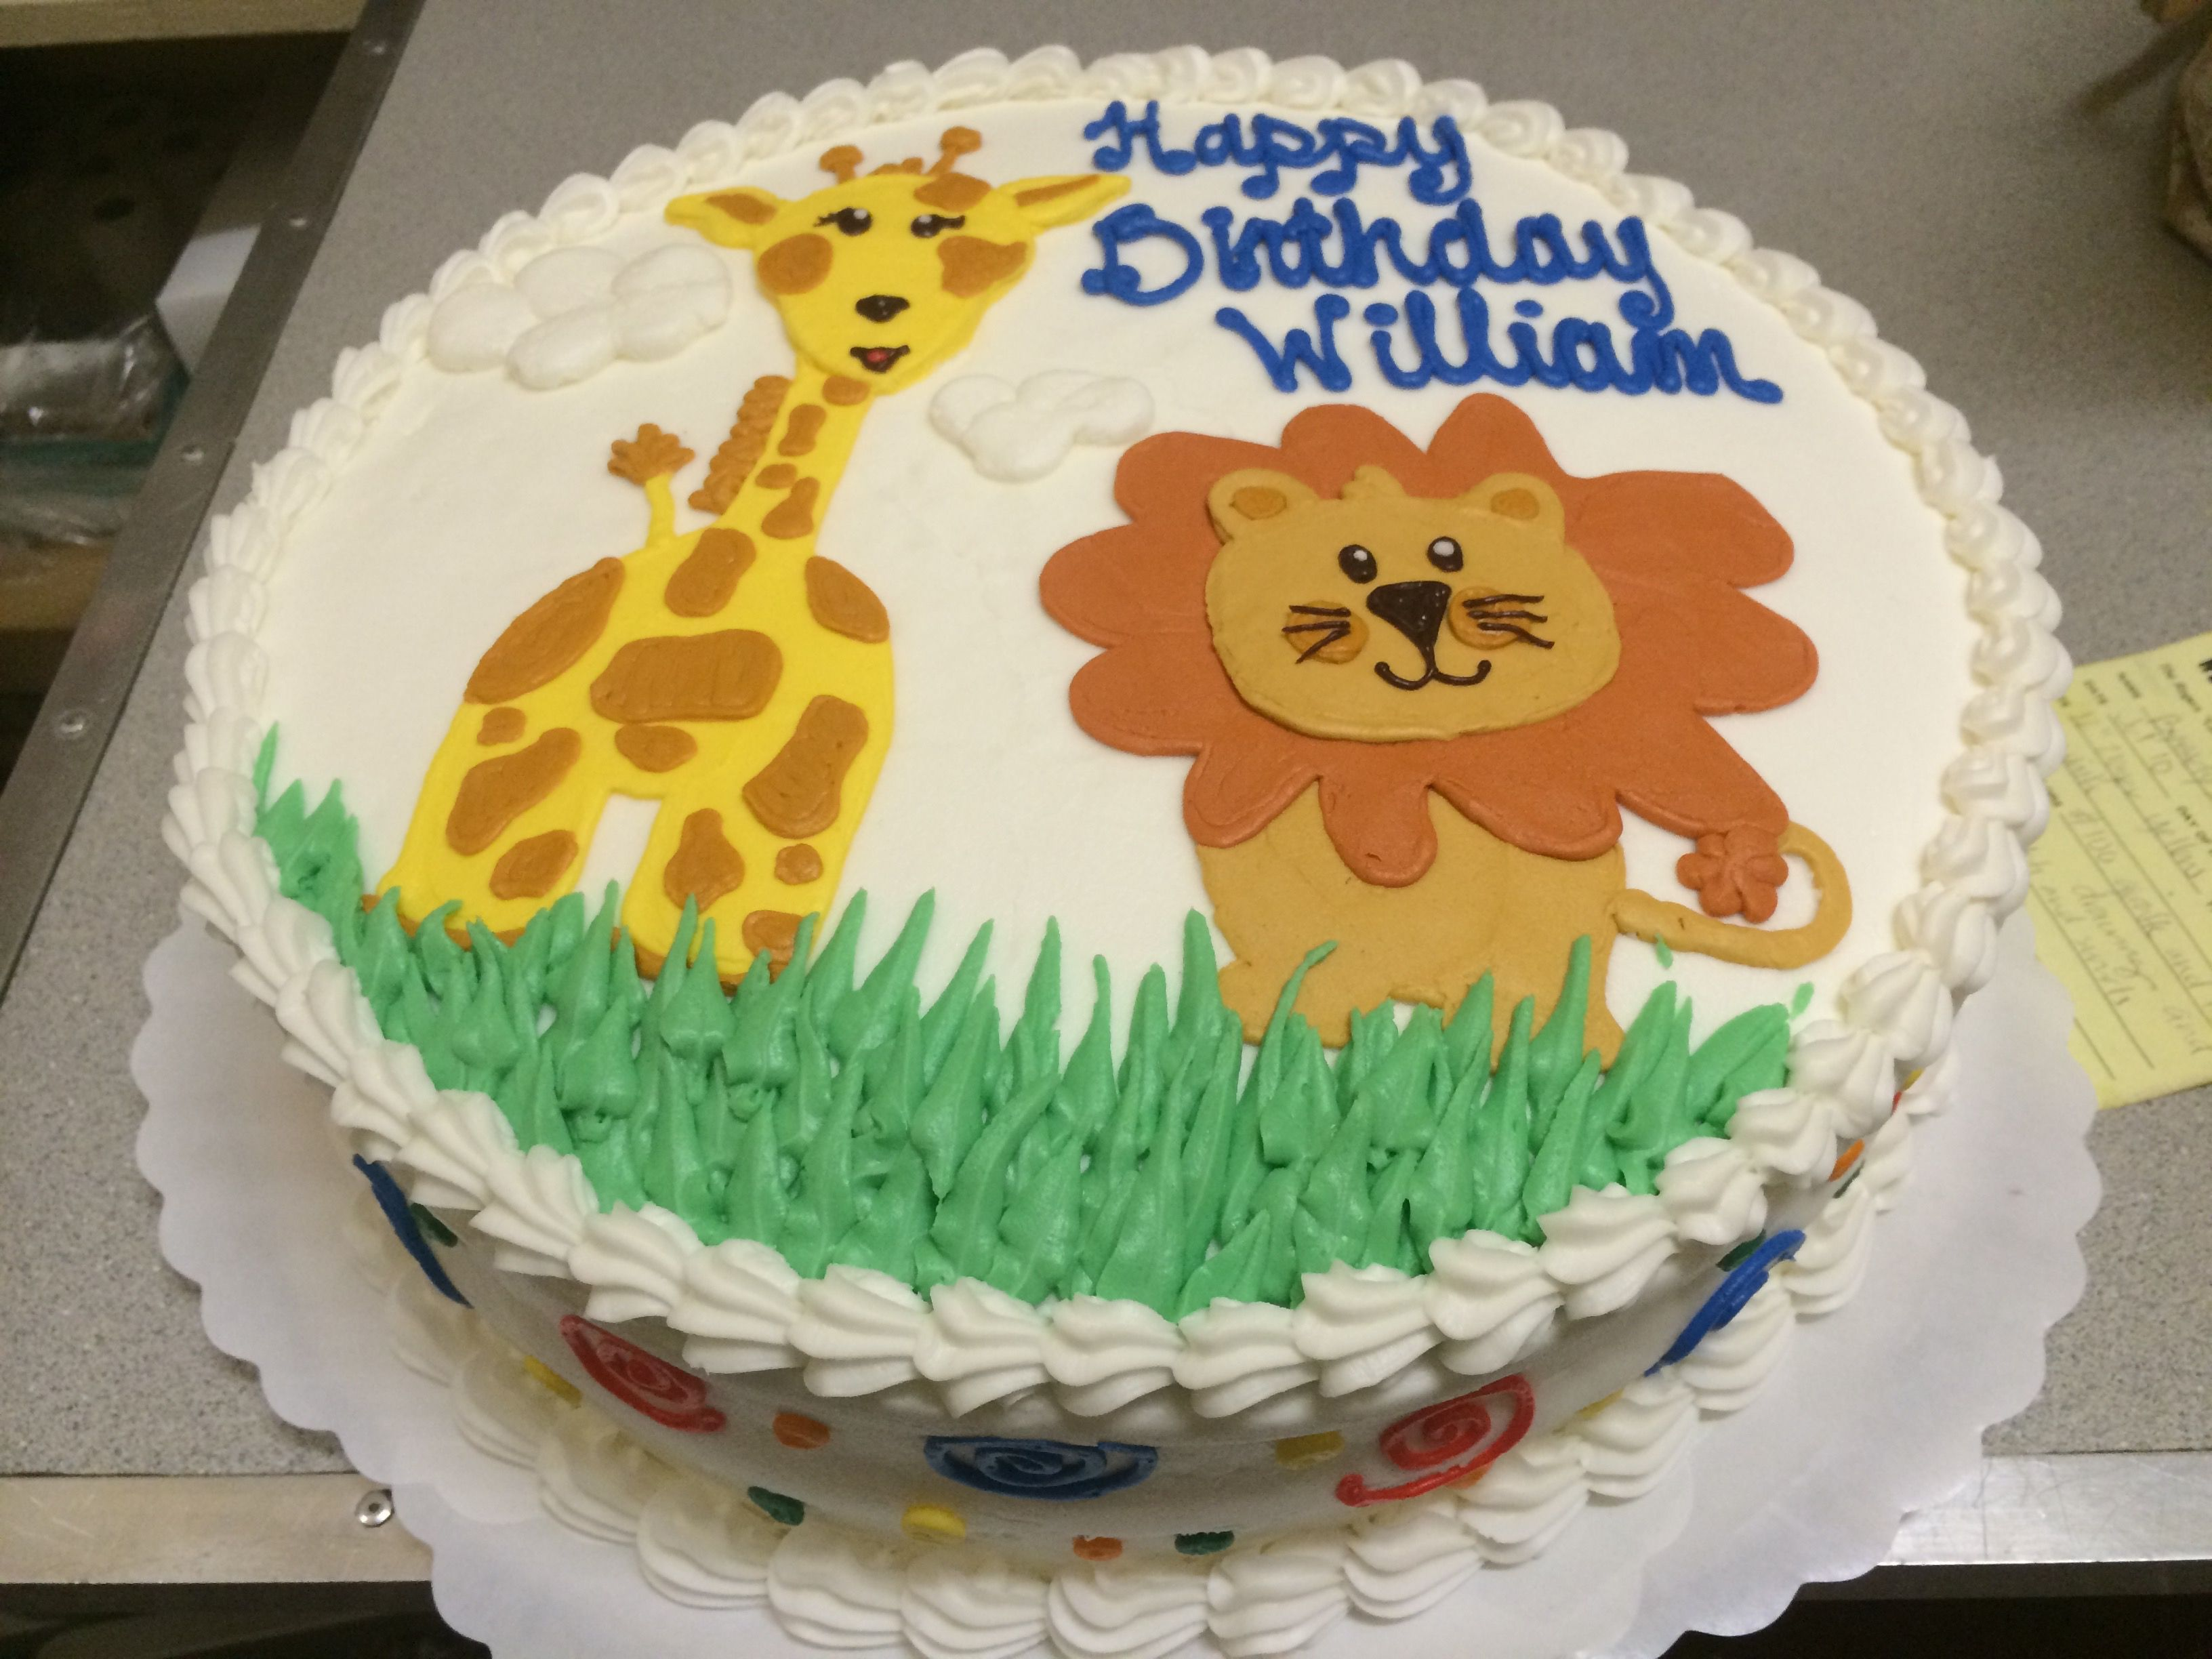 Groovy Birthday Cake With Cute Animal Theme Lion And Giraffe Westhampton Personalised Birthday Cards Beptaeletsinfo